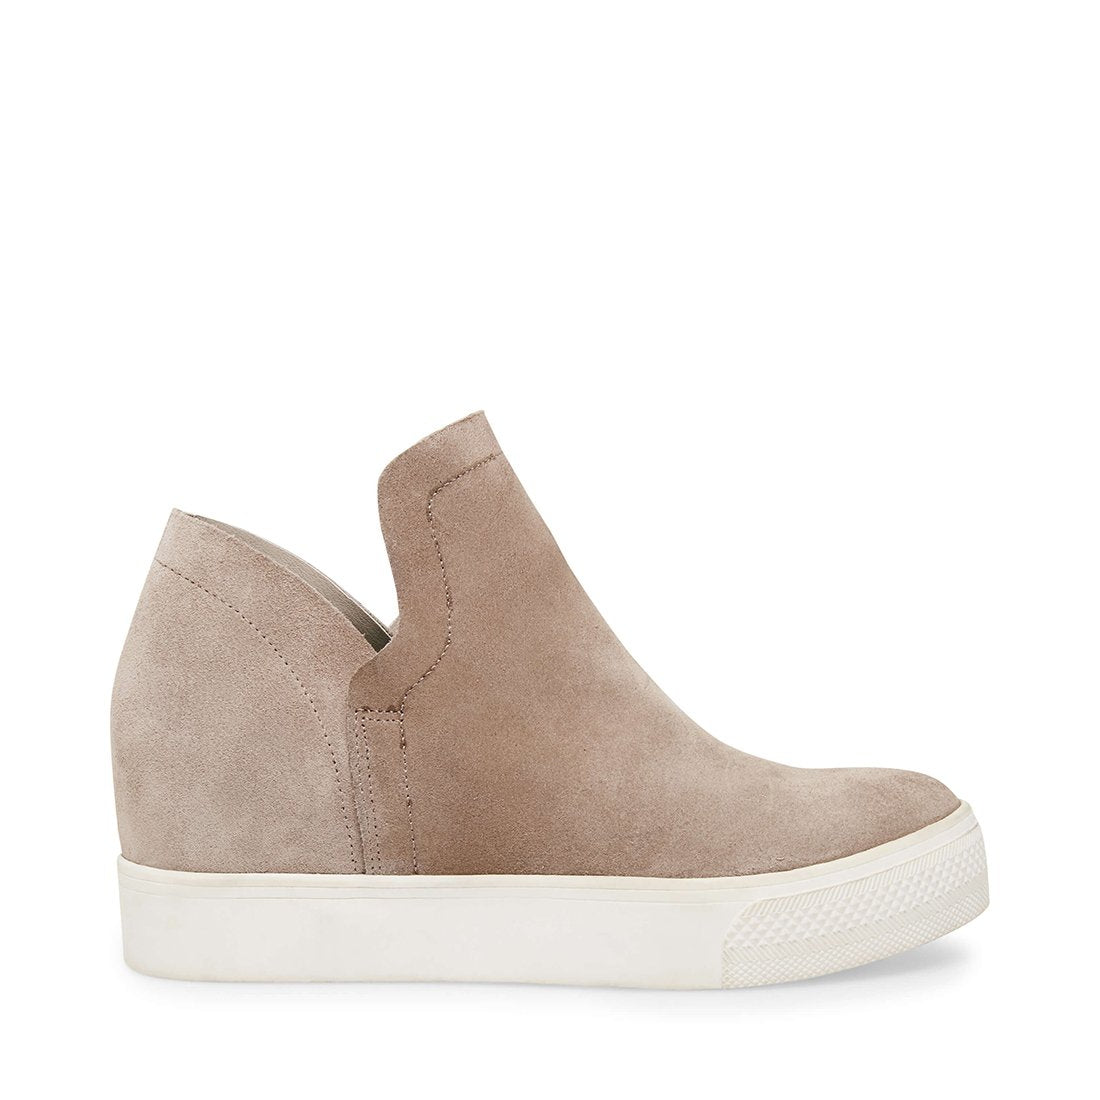 4b57d17b1d2 WRANGLE TAUPE SUEDE – Steve Madden